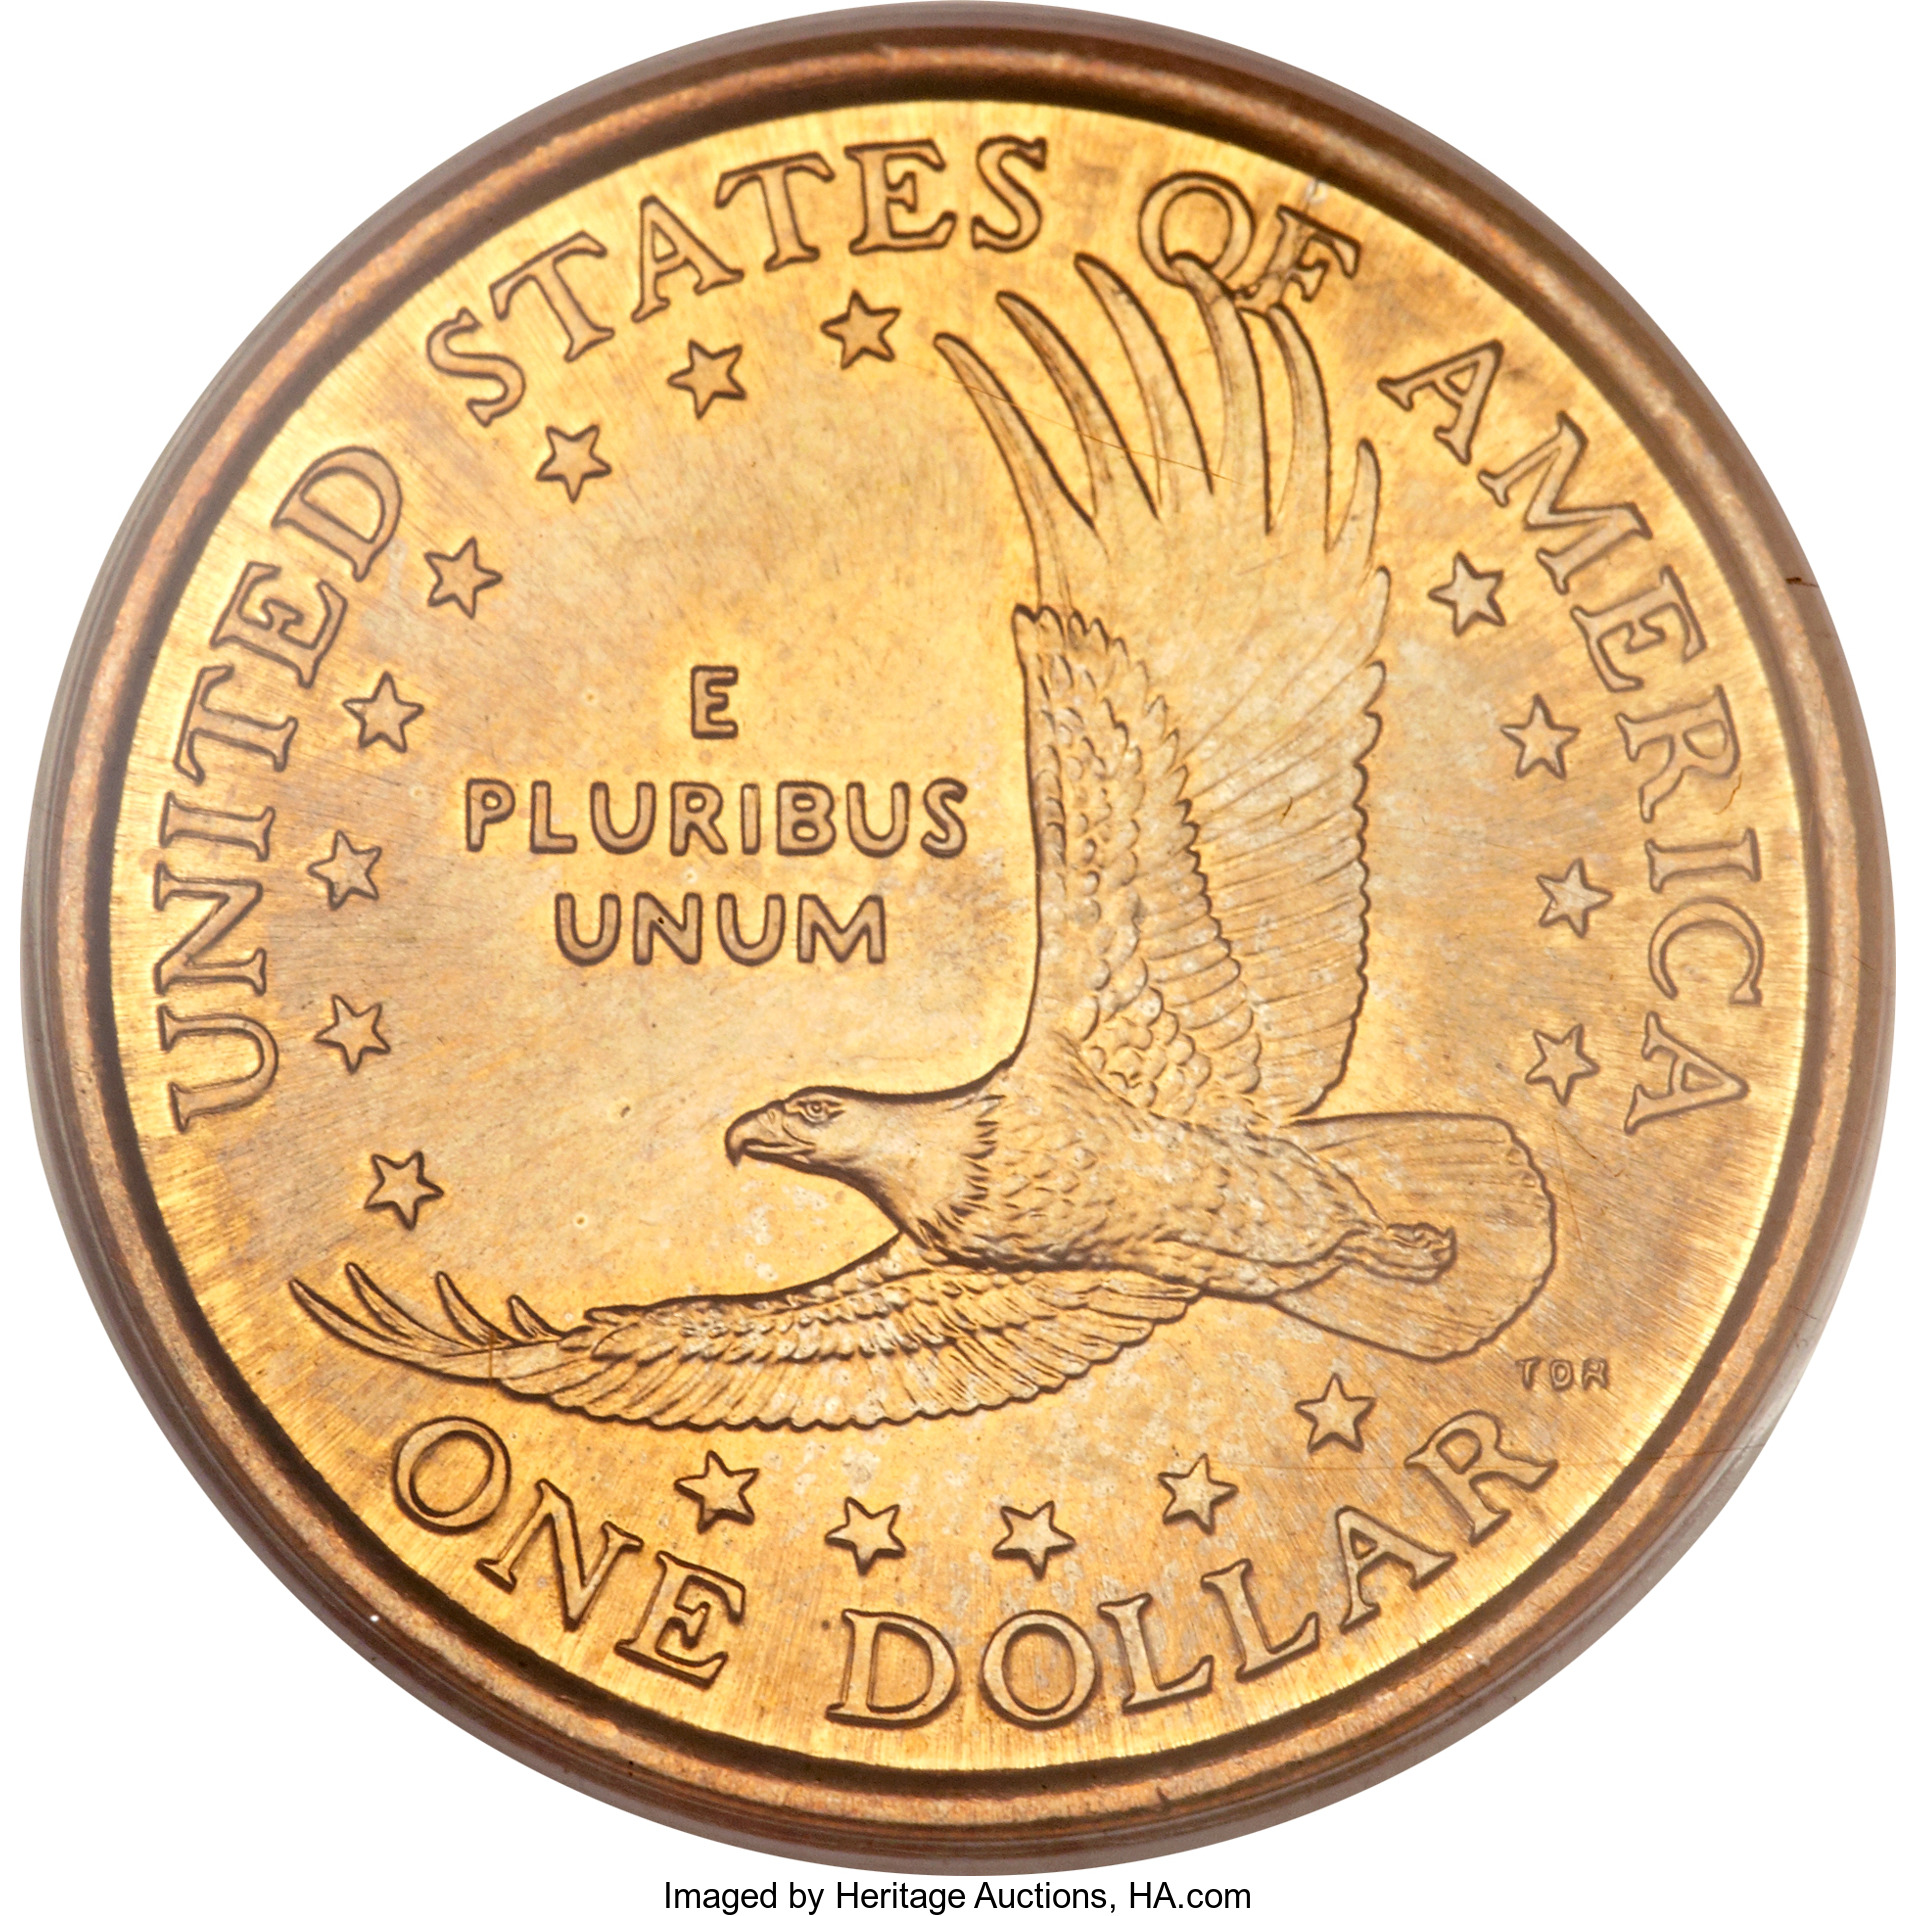 Appearing on the reverse of the manganese brass coin is what one would expect to find: the Soaring Eagle reverse of the just-released golden Sacagawea dollar. But the other side isn't Sacagawea. It's interesting to speculate if any more or out there, lying in unsearched rolls or bags of the millennium dollars.